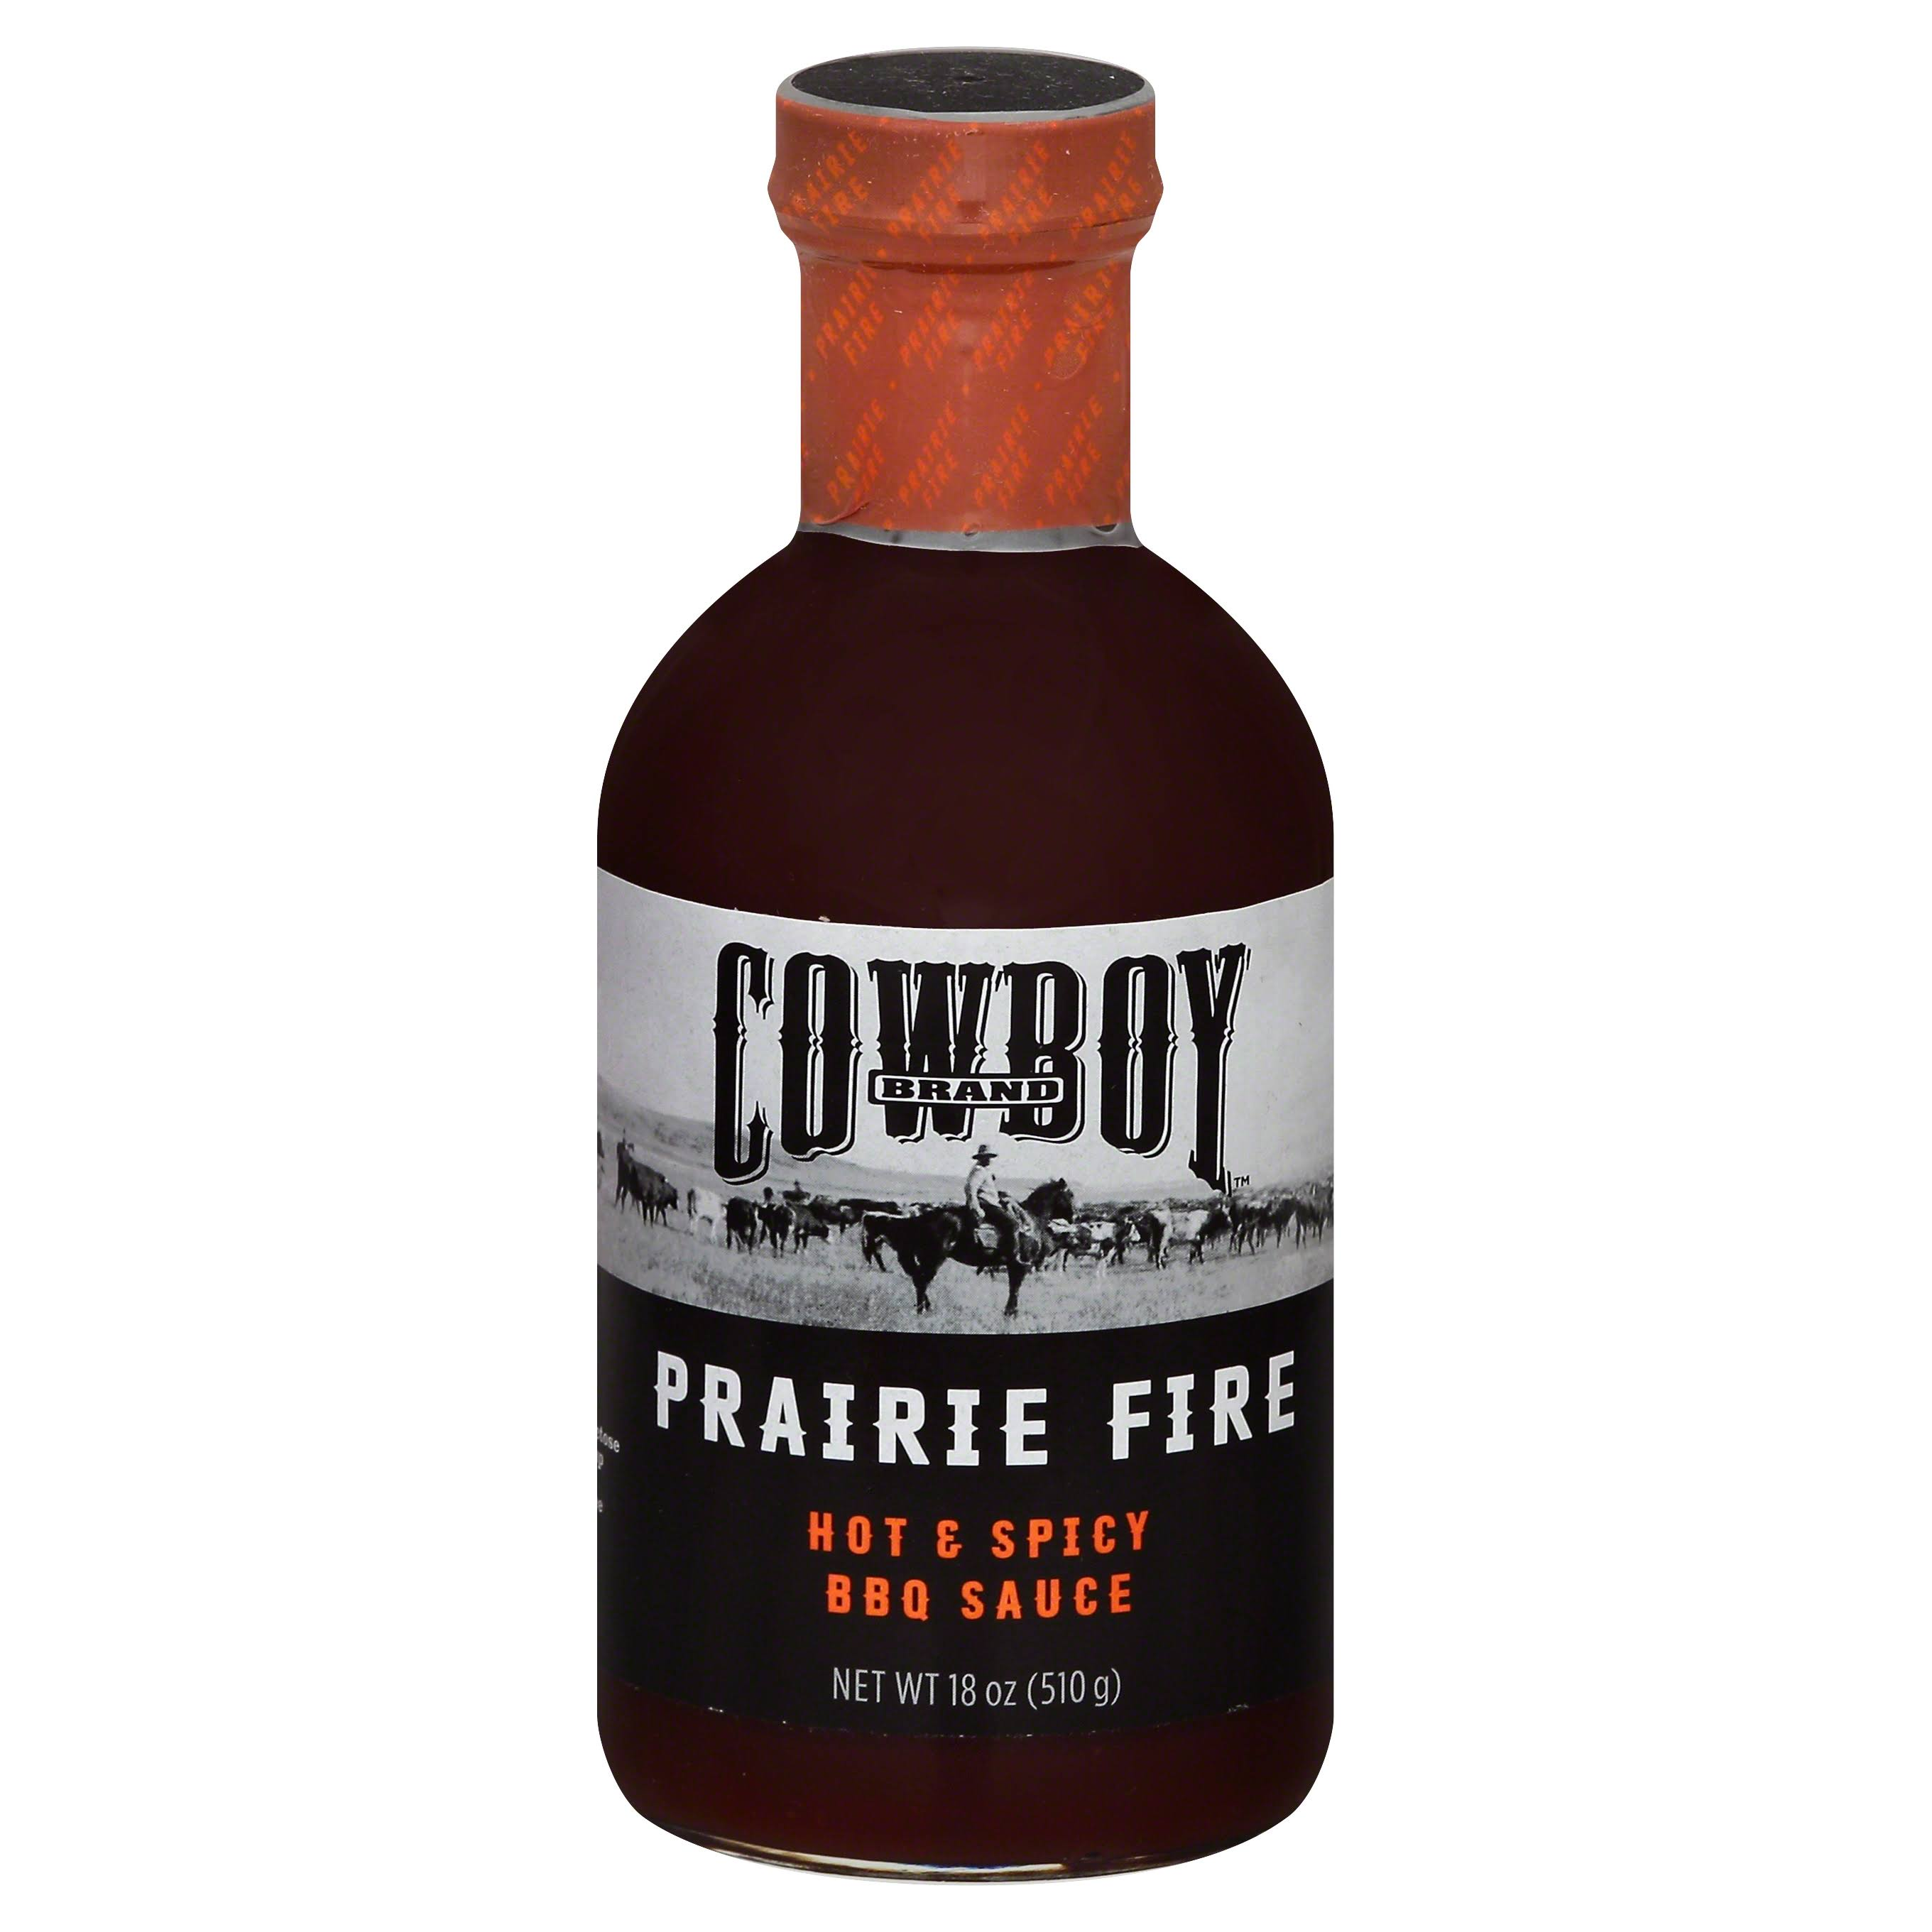 Cowboy Prairie Fire BBQ Sauce - Hot and Spicy, 18oz